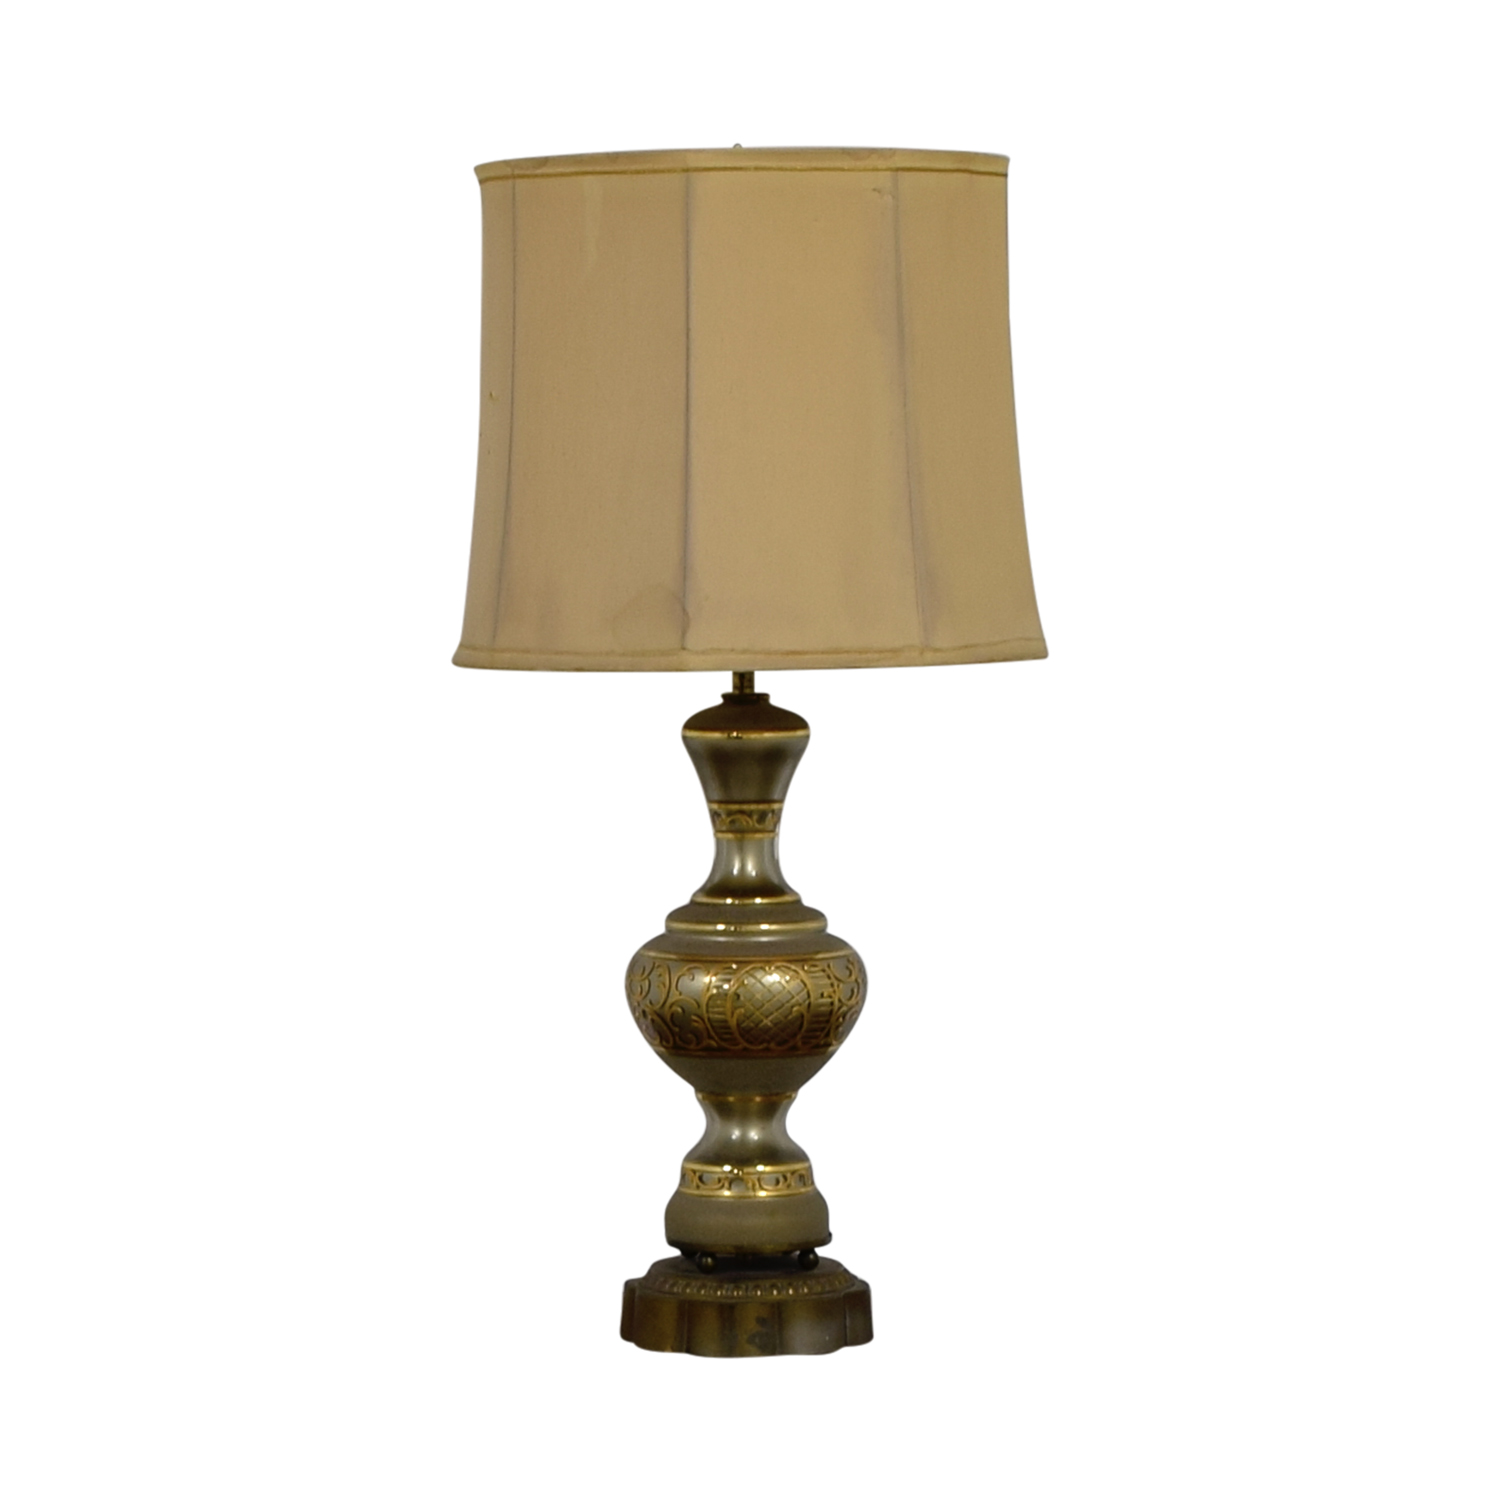 buy Mid Century Vintage Gold Table Lamp online